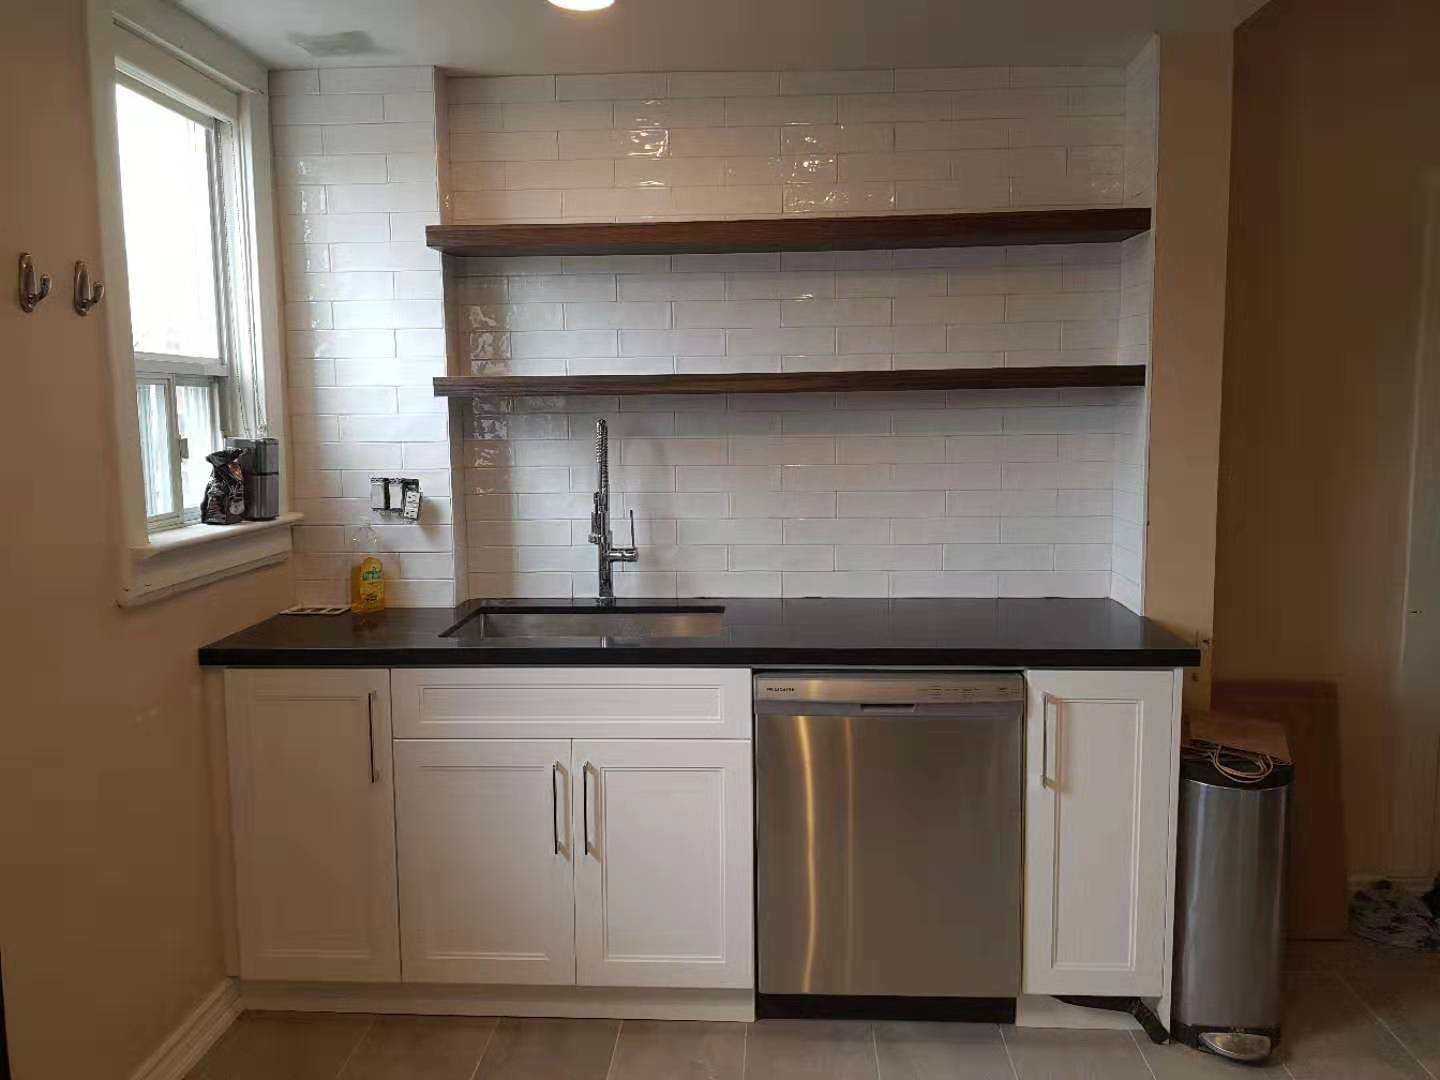 White MDF kitchen and wood pattern shelves